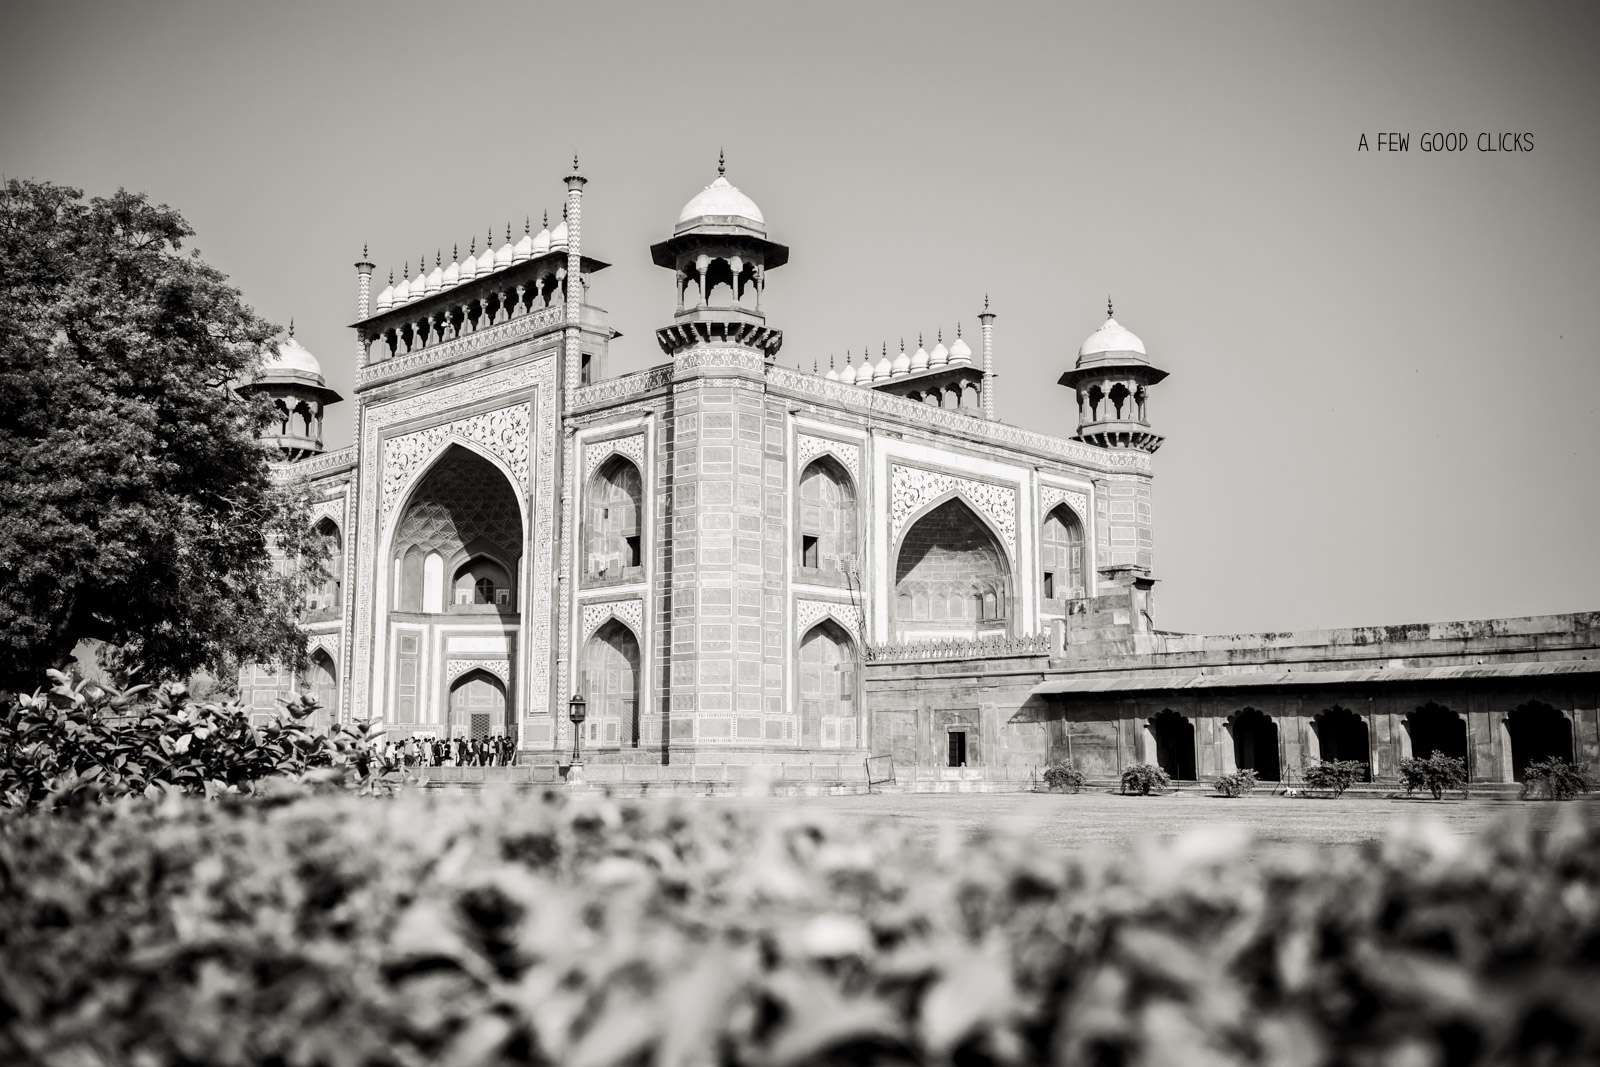 view-from-south-entrance-taj-mahal-gate-photograph-by-afewgoodclicks.net